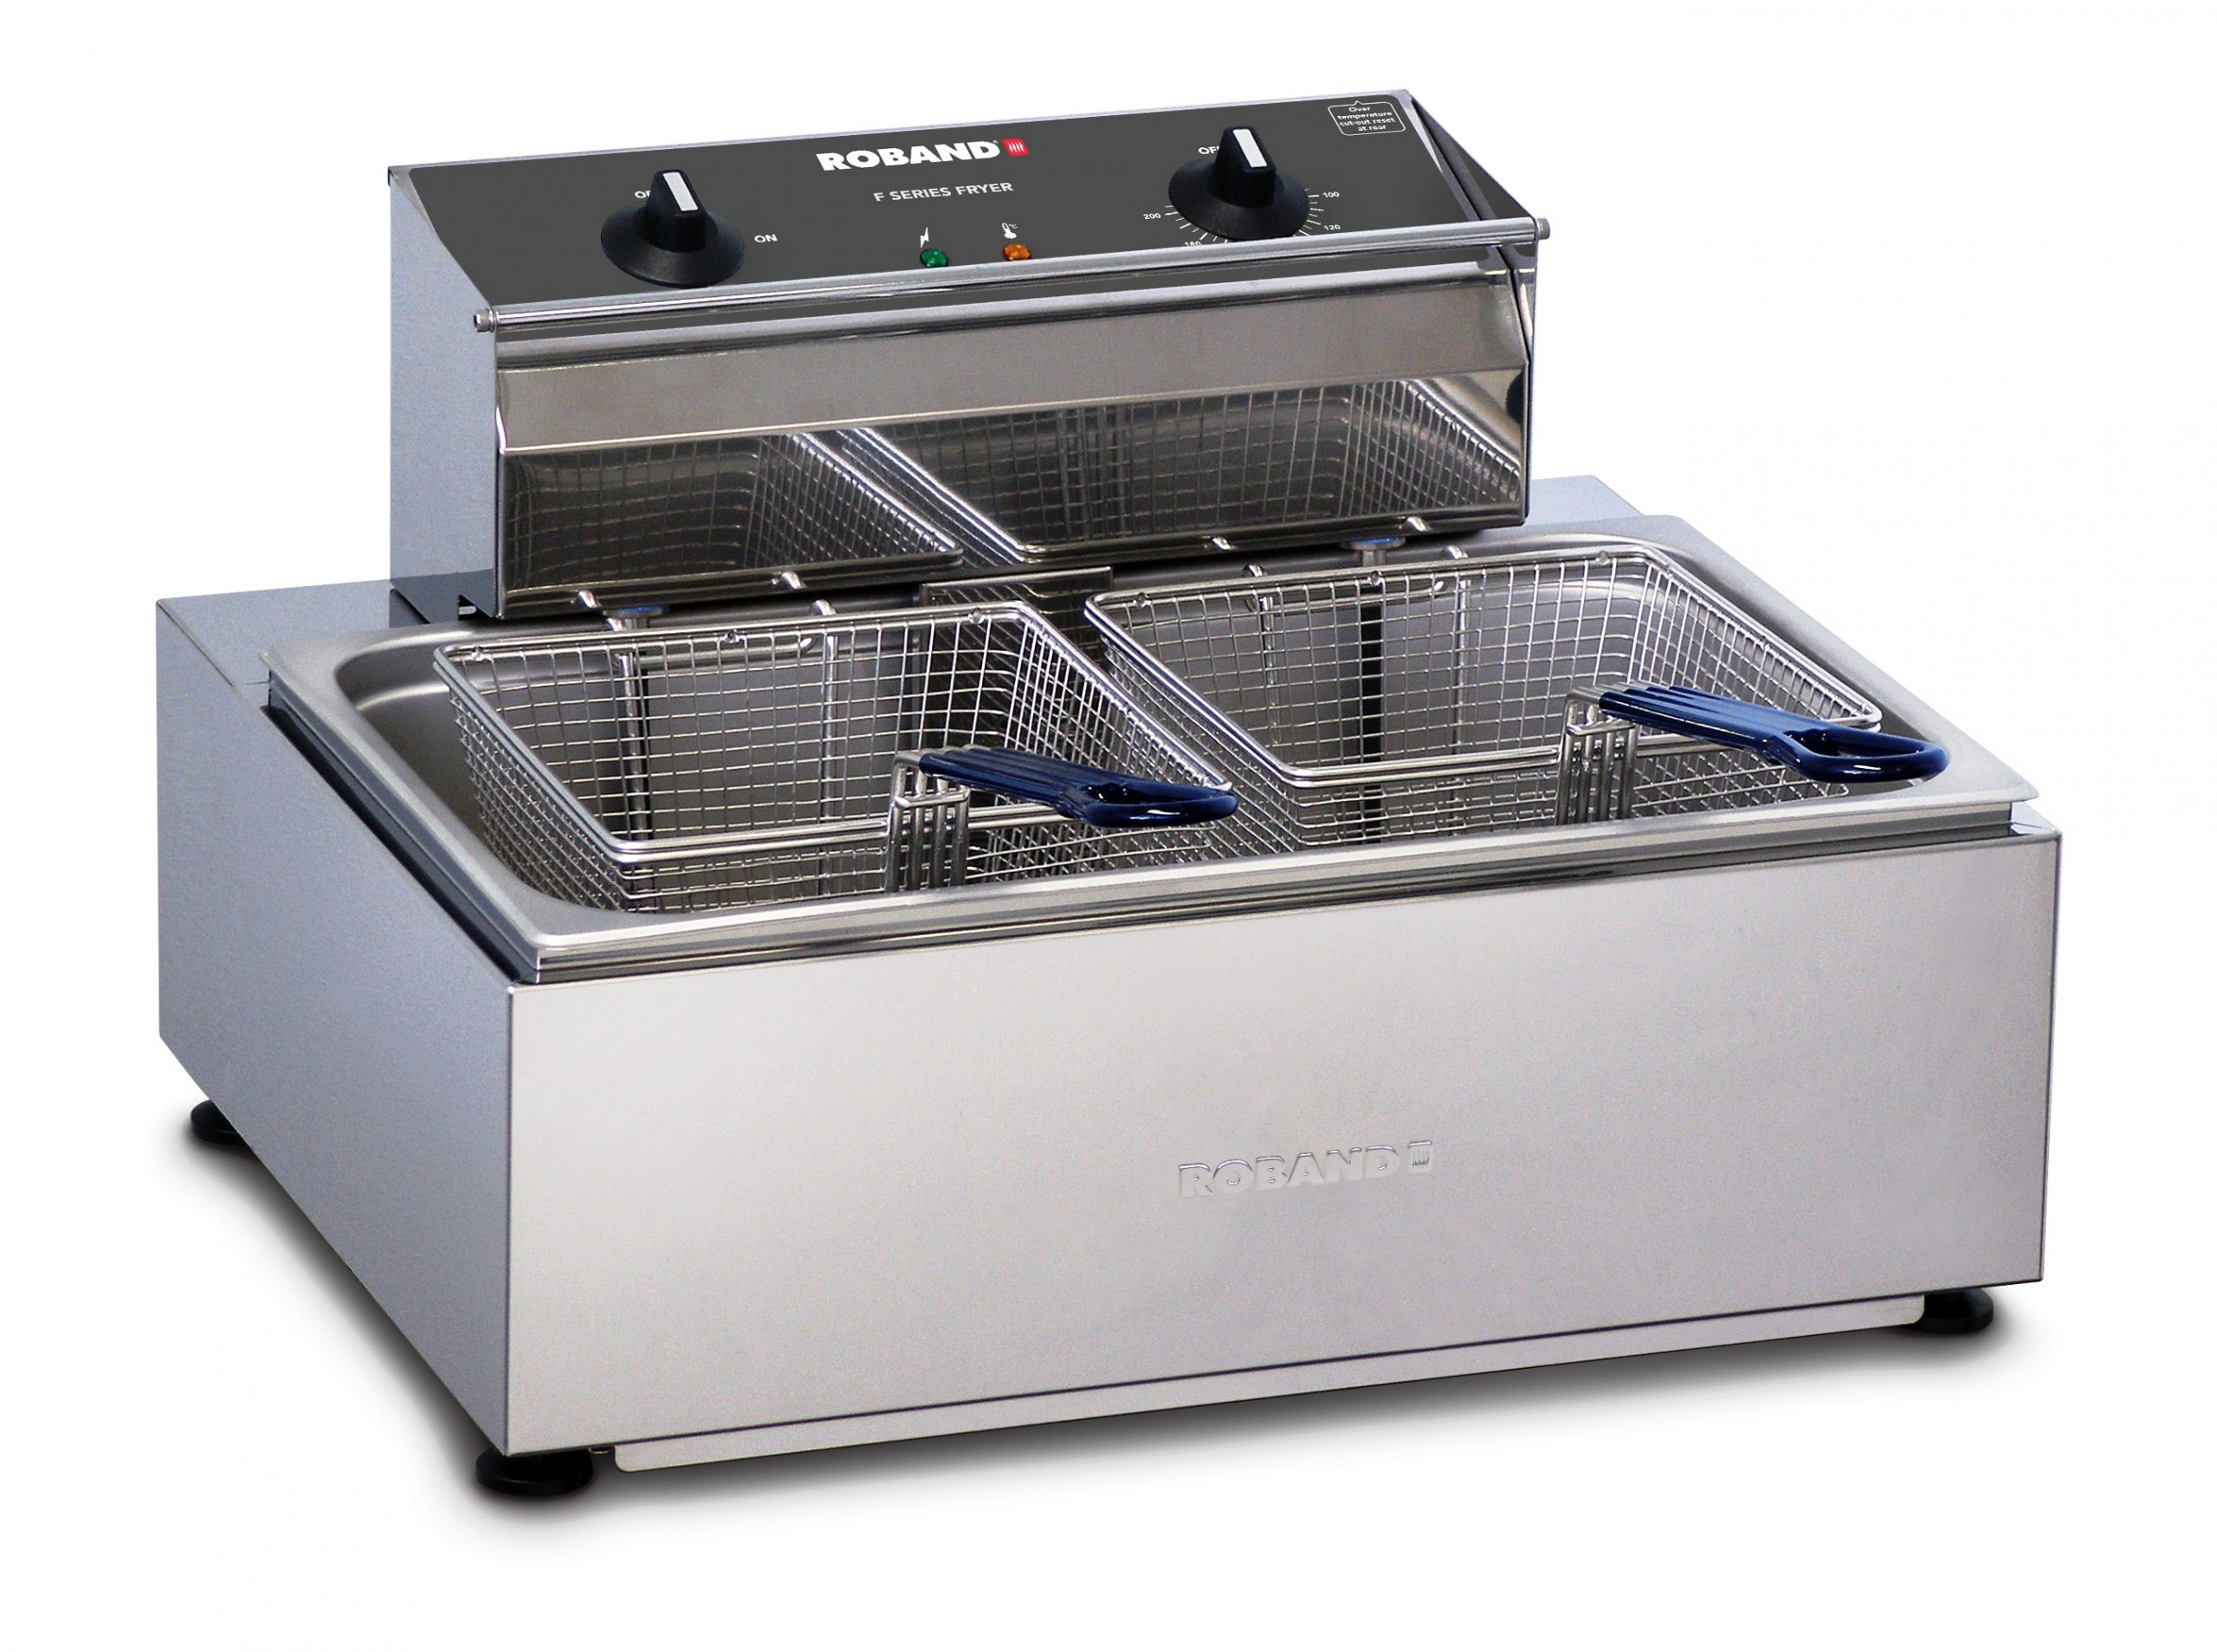 Roband F111 Countertop Fryer